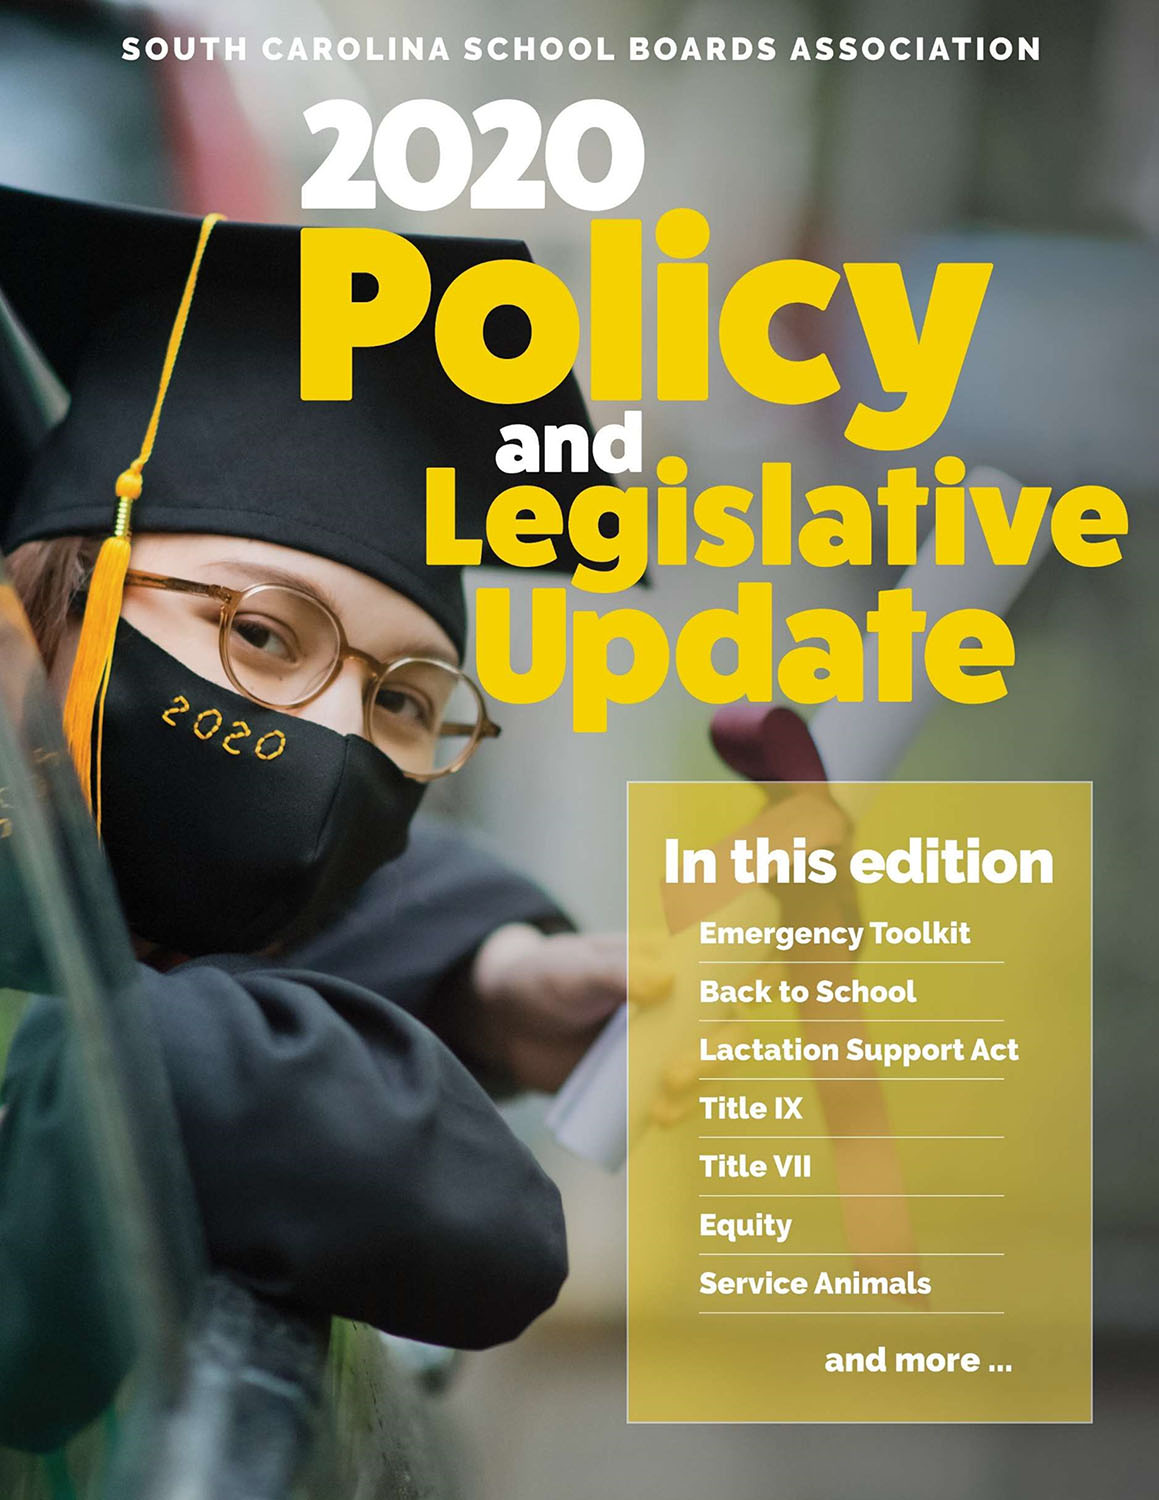 2020 Policy and Legislative Update